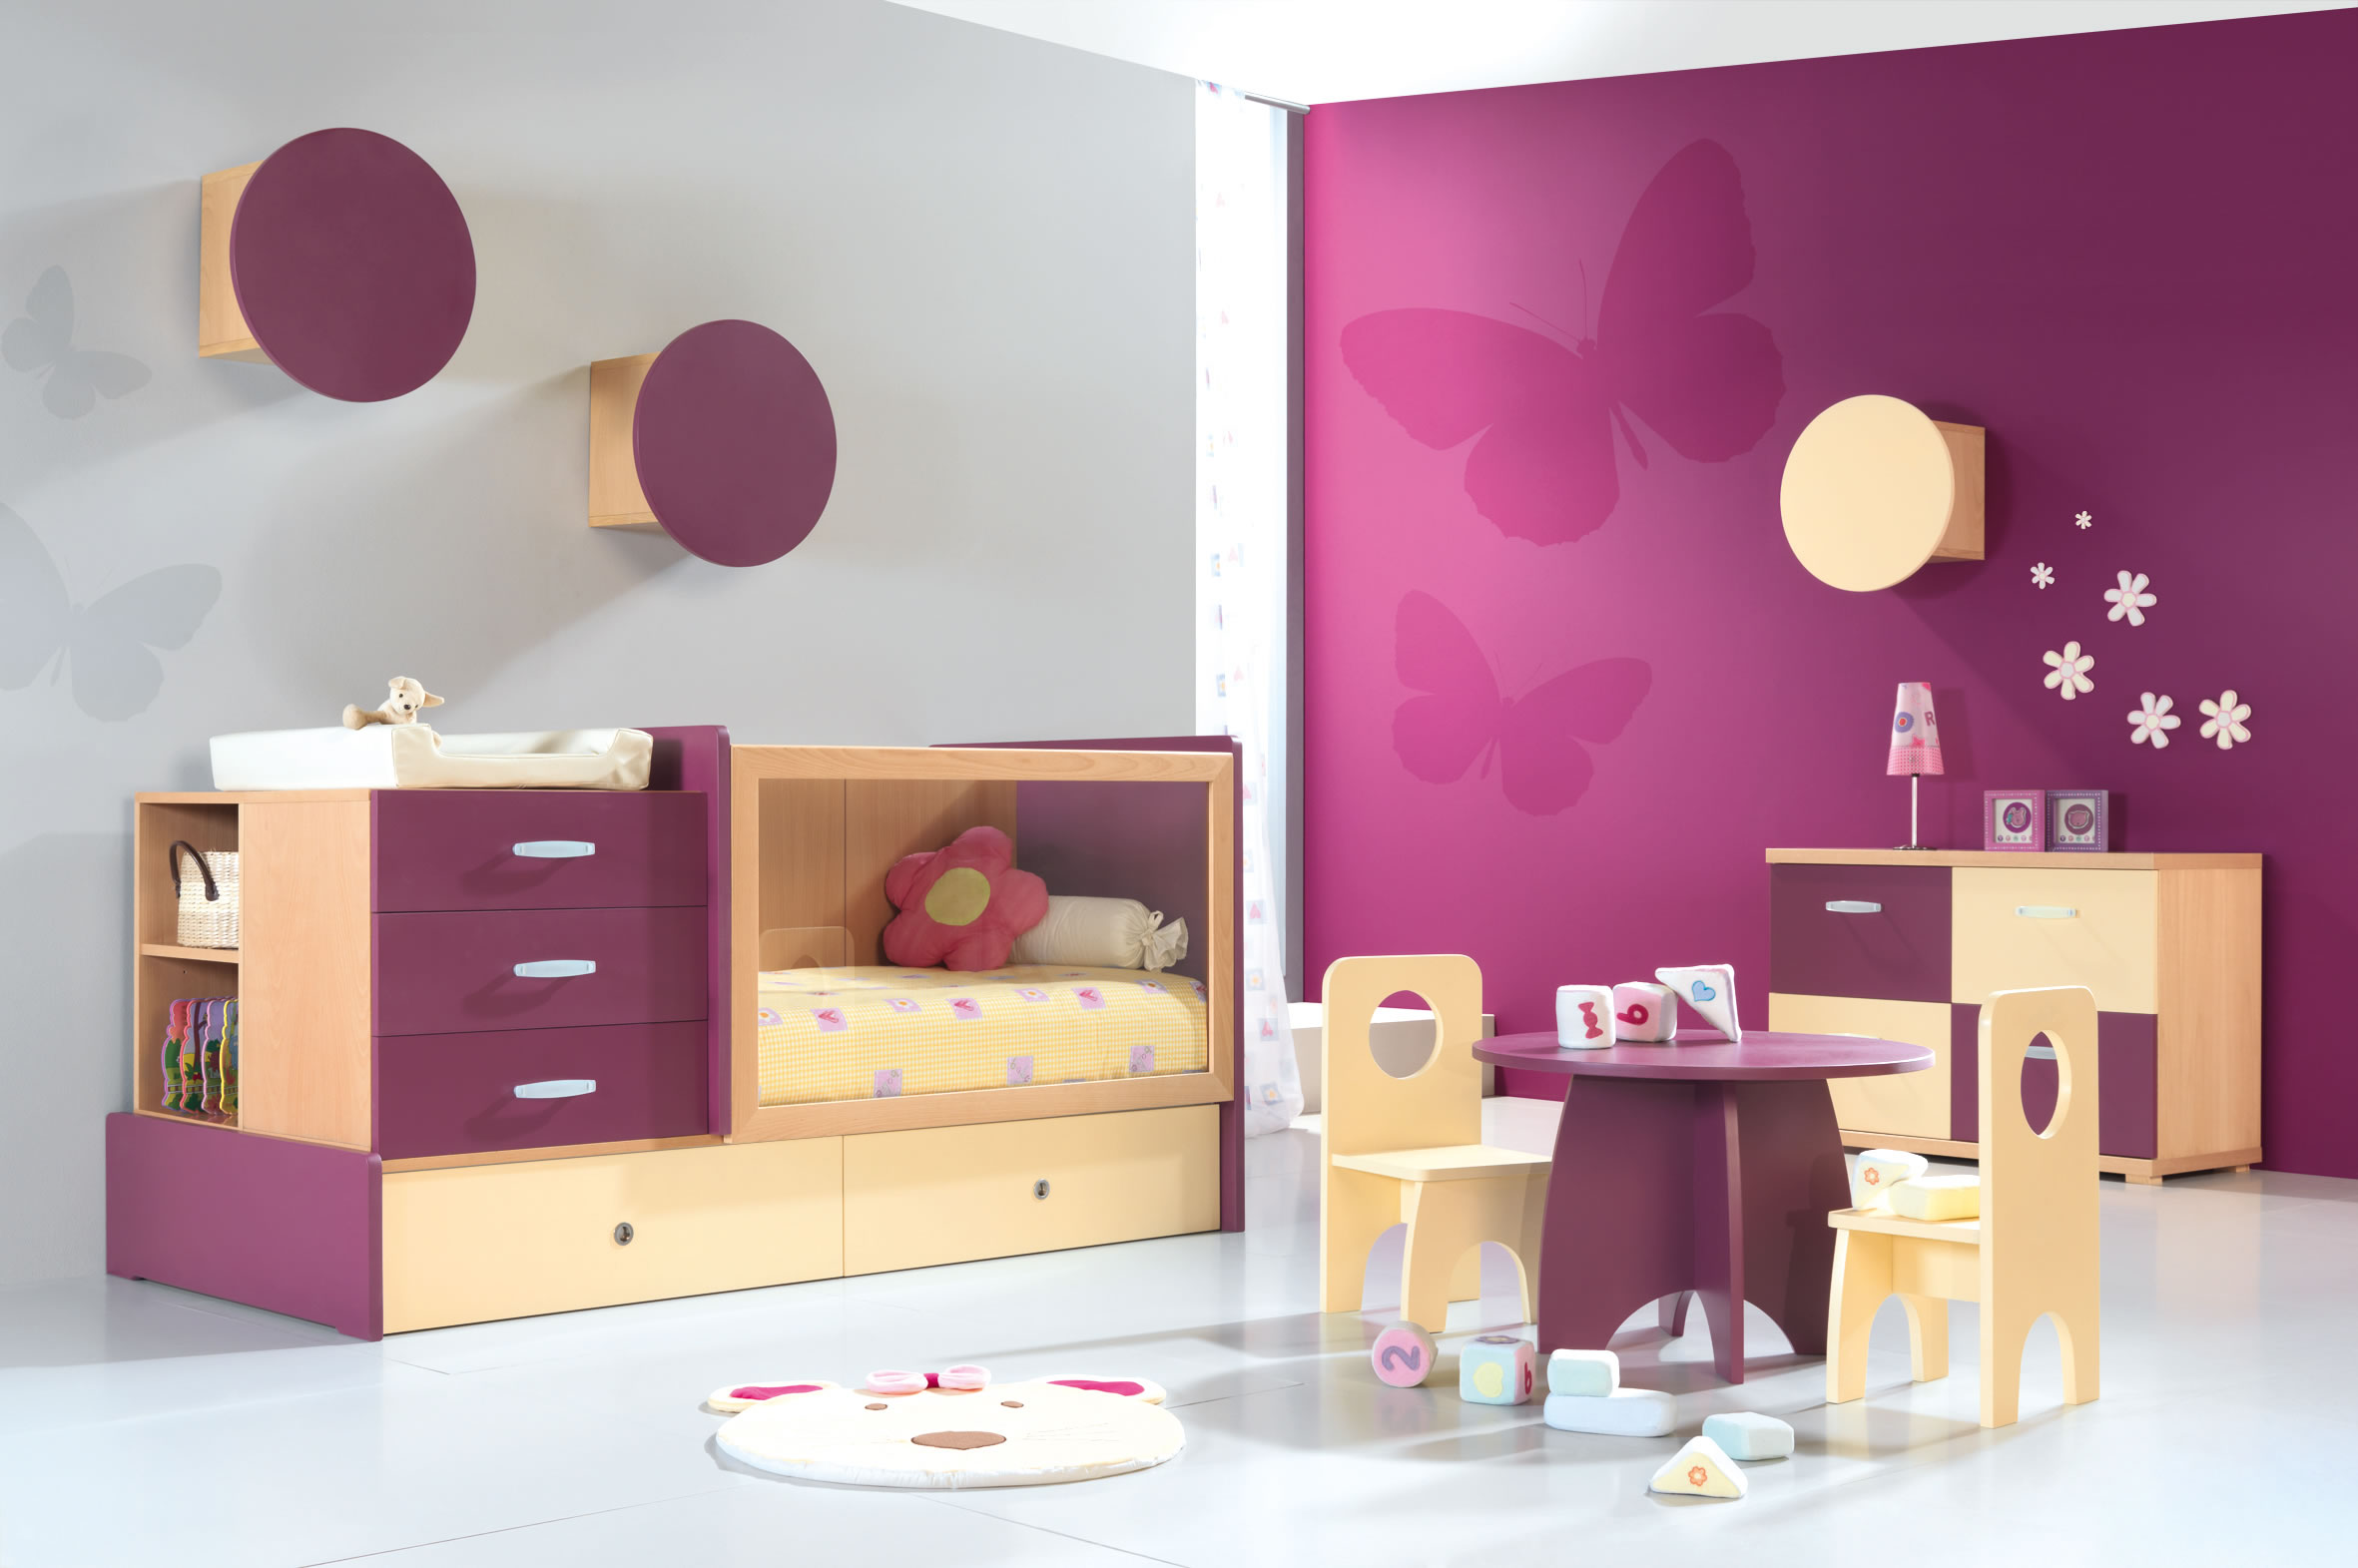 Deco murale chambre enfant chambre enfant decoration for Decoration murale enfant